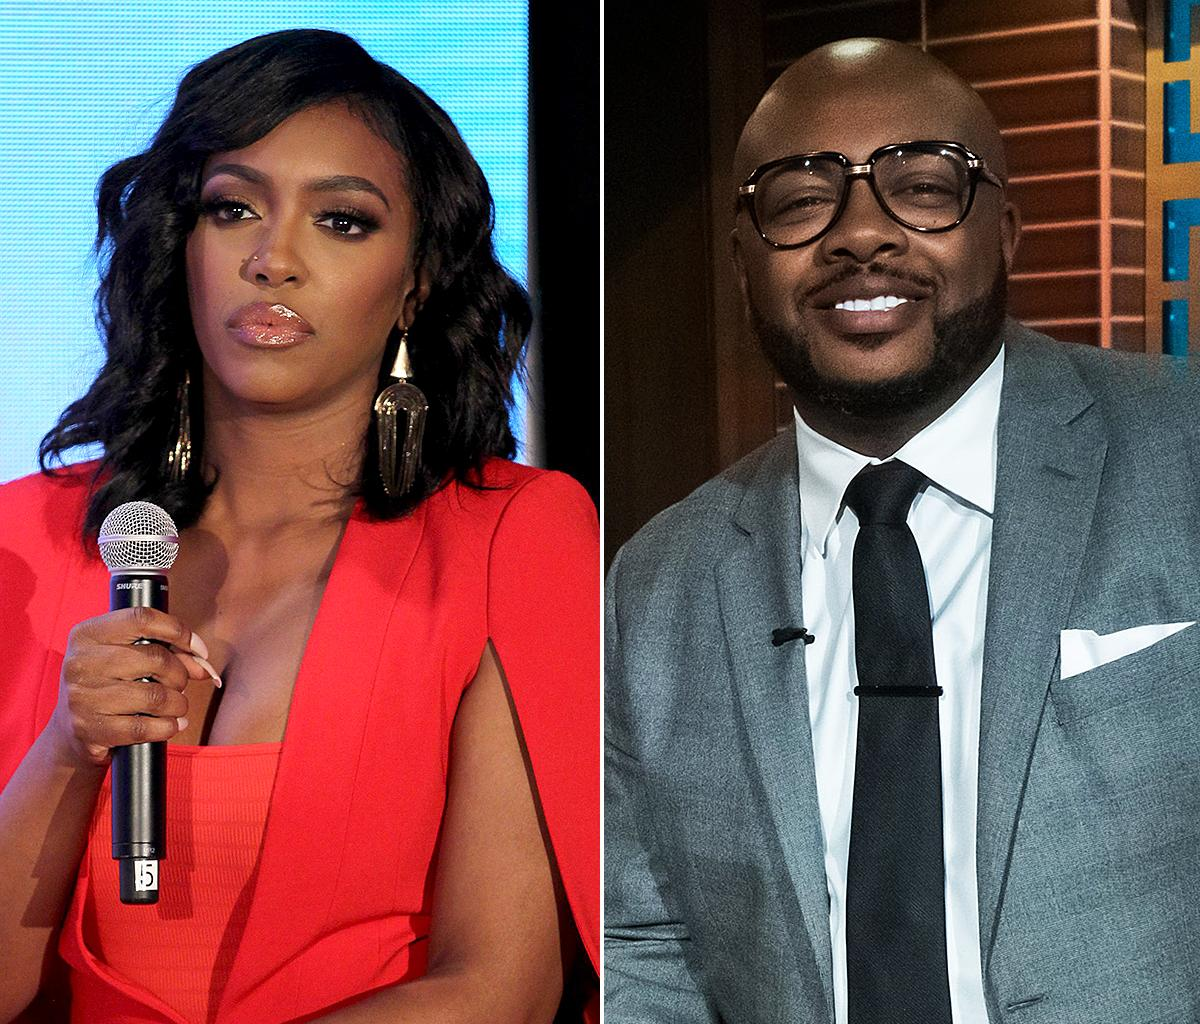 Porsha Williams Recalls The Times When She Was Pregnant With PJ - See The Throwback Photo With Dennis McKinley